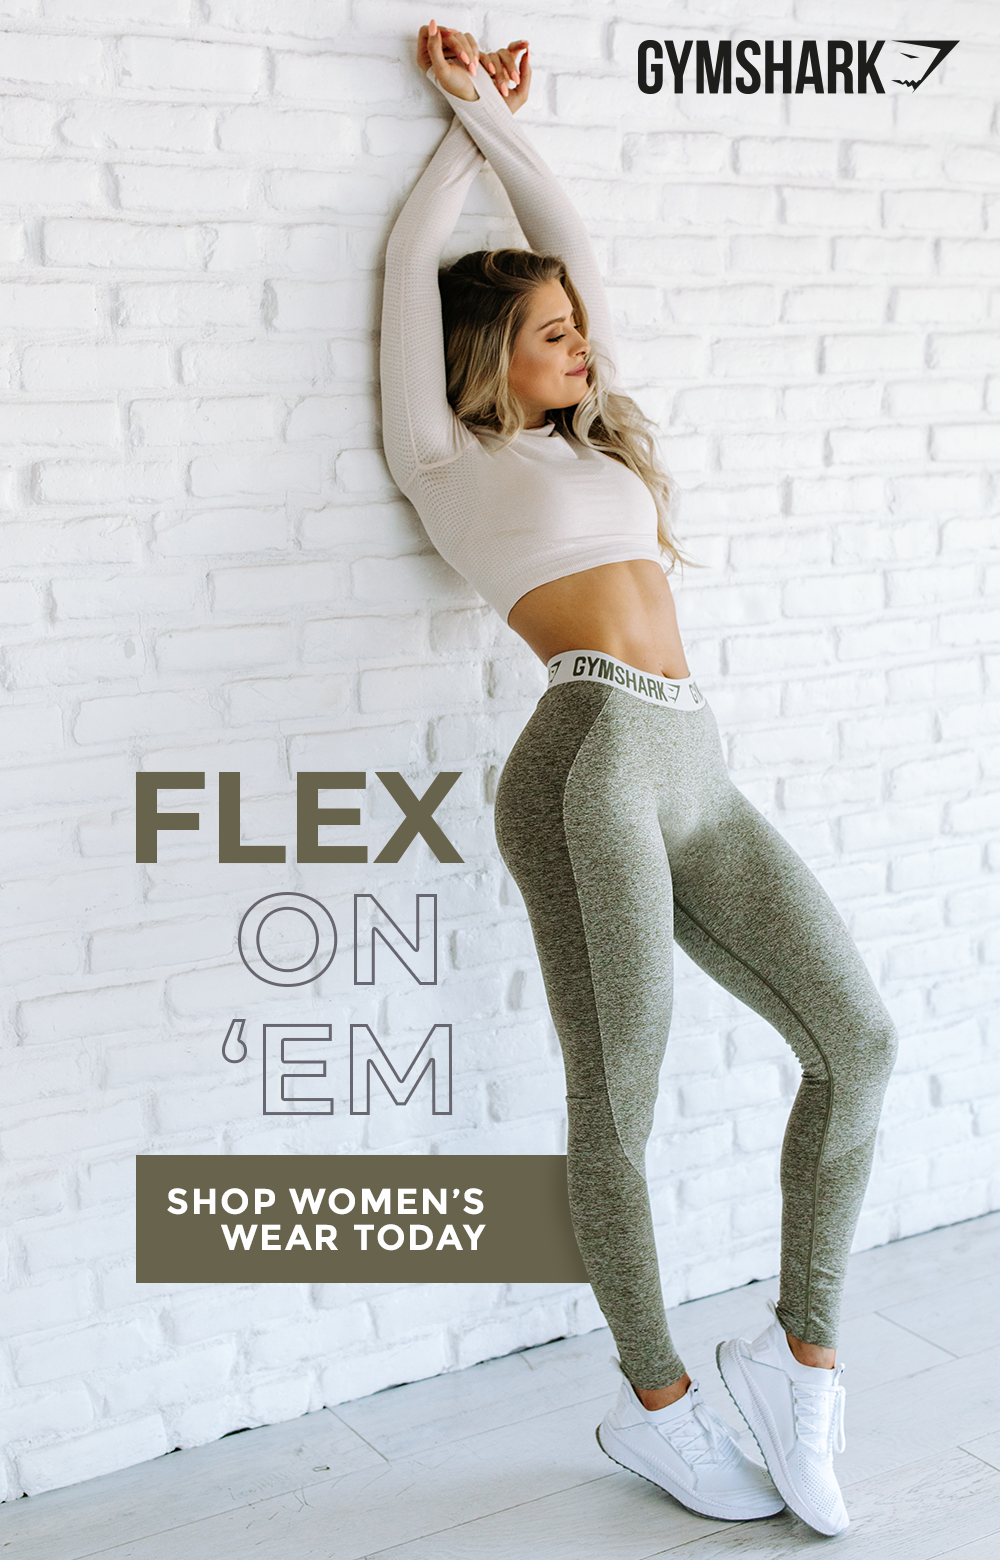 0c1f30d36a28 Combining our signature seamless knit with superior, sculpting design. The  Flex Sports Bra boasts moisture-wicking technology and form flattering  contour ...